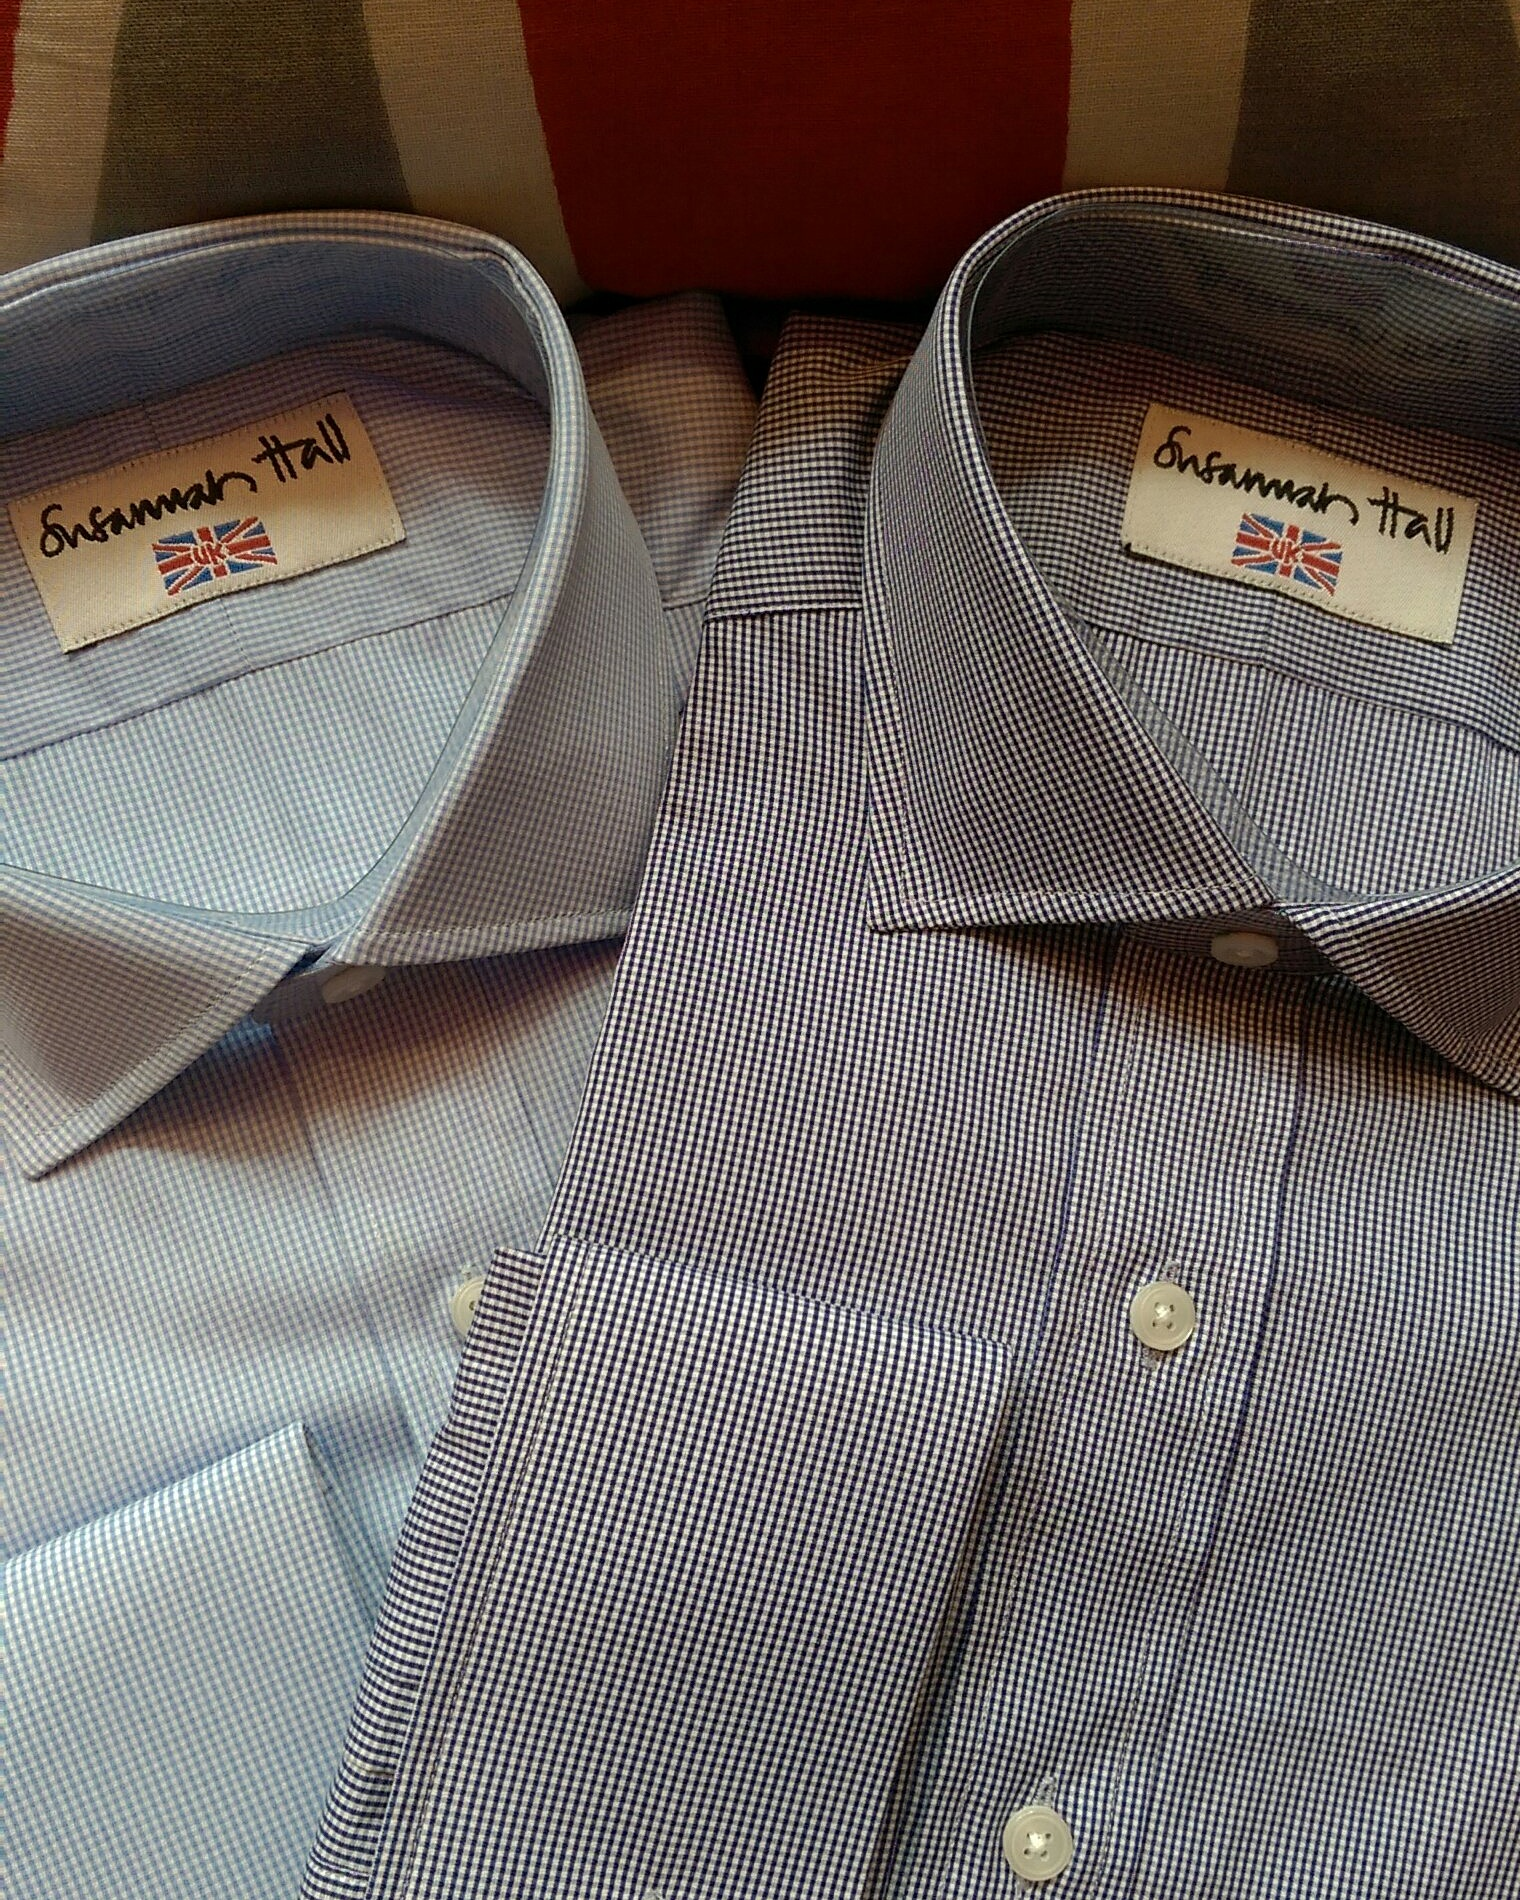 blue-navy-gingham-check-shirt-bespoke-british-all-uk-made-susannah-hall.jpg